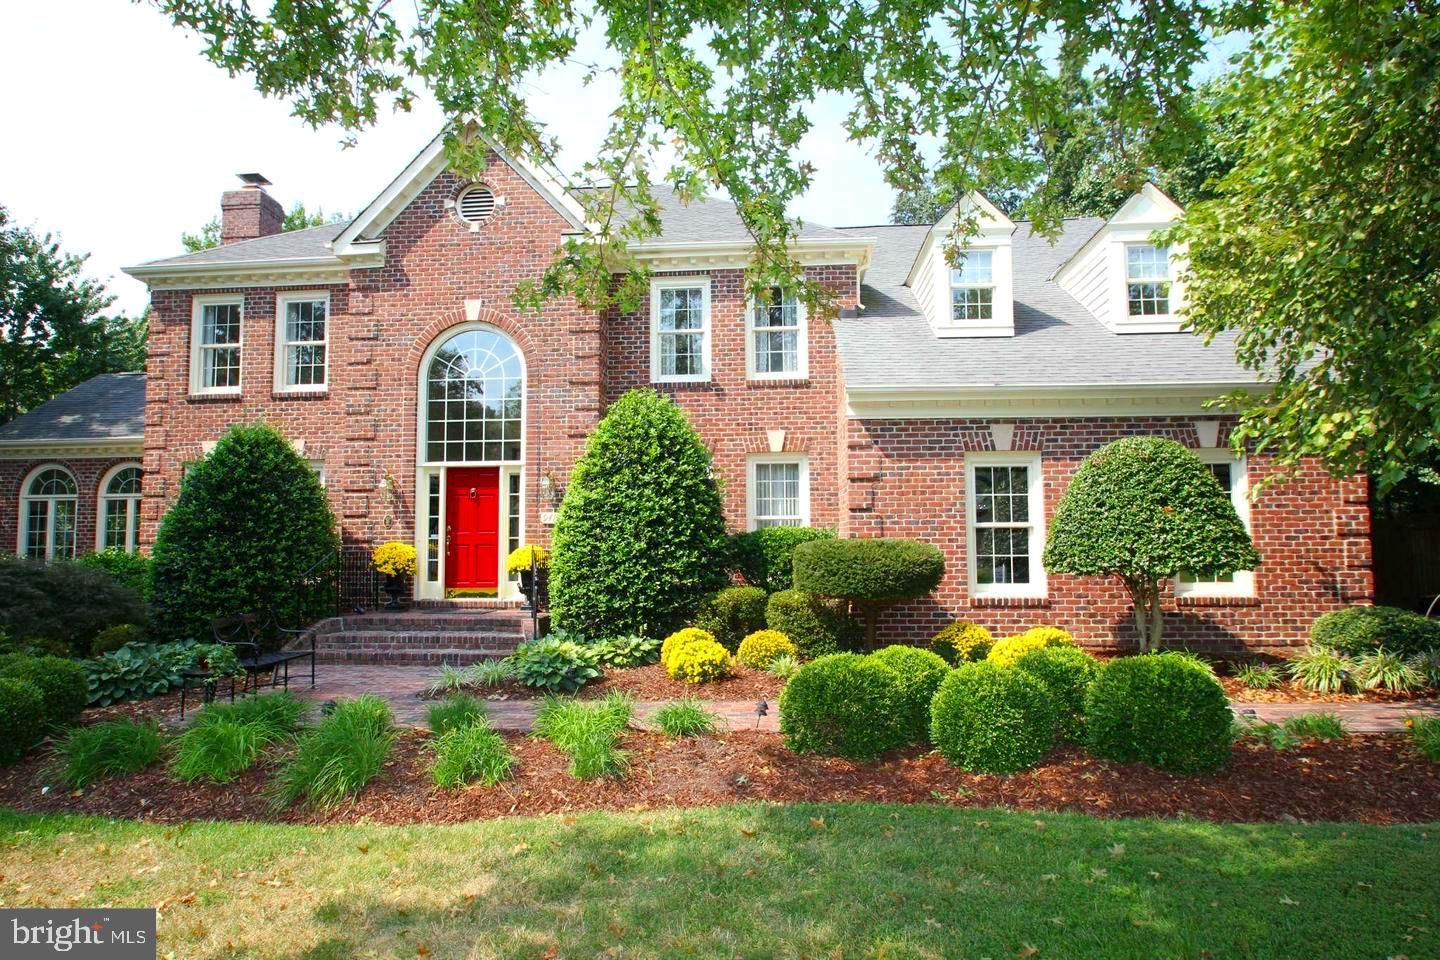 Truly Beautiful, Georgian Style Center Hall Colonial in Sought after Belle Rive, a Premier Waterfront Community in Mt. Vernon. This 5BR, 4.5 Bath, 5600+ square foot home Will Not disappoint. Beautifully Landscaped .50 acre lot with in-ground pool and charming pool house. Where to begin with this Lovely home~. The Location AMAZING, The Size HUGE, The Workmanship SUPERB.  This Beautiful Home is an original Genuario Custom Home set on one of the Original Farms of Mt. Vernon with 5 Large Bedrooms and 4.5 fully updated Bathrooms.  You~ll enter into the Grand 2 Story Foyer with Beautiful Curved Staircase, Custom Marble Floor, and Attractive Woodwork.  Formal living room has Transom Windows, Crown Molding, Gas Fireplace with Marble Surround & Beautiful Mantle, and Hard Wood Floors. The Formal Dining Room has Tray Ceiling, Beautiful Wood Working and Hardwood Floors. A Butler~s Pantry will lead you to the Gourmet Eat-In Kitchen with Granite Countertops, High-end Stainless Appliances, Gas Downdraft Cook Top, Hardwood Floors, and Subway Tiled Backsplash. Kitchen has Open views to the 2-story Family Room with Gorgeous Stone Front Wood Burning Fireplace and oversized Palladium Windows. The Main Level additionally has a Stately Office/Den with Custom Built-Ins, and what might be my Favorite Room~. A light filled Sun Room / Bonus Room with floor to ceiling Palladium Windows and French Doors leading to your Private Deck overlooking the Sparkling Pool complete with Charming Pool House.  The Sun Room is finished with New Custom Shenandoah Plantation Shutters.  Upstairs you will find the Large Master Retreat complete with 2 Walk-In Closets, Sitting Area, Cathedral Ceiling, and Beautiful Windows with Plantation Shutters.  The Master Bath has 2 Separate Upgraded Vanities, Large Soaking Tub, Separate Glass  & Tile Shower.  Don~t forget to check out the Linen Closet in the Master.  Upstairs has a  2nd Bedroom with Full Bathroom Ensuite. The large 3rd & 4th Bedrooms share a beautifully updated 3rd Full Bathroom.The Fully Finished Basement offers an additional 1,500 SF (approx.) of Living Space and Tons of Easily Accessible Storage.   Downstairs you will find the 5th Large Bedroom complete with window & closet and Another Full Bath, making a total of 4 Full Bathrooms.    WetBar/Sink, Exercise Area, TV Room, Game Room large enough for a Beautiful Pool Table can also be found in downstairs.  The Location is unsurpassed~.starting with your own .50 acre landscaped lot on a lovely cul-de-sac in the Premier Waterfront Community of Belle Rive.  Beautiful Covered Deck overlooks your Built-In Swimming Pool, Pool House, and Patio.  You are only a very short walk away from both Mansion House Swim/Dive/Tennis Club AND Mansion House Yacht Club. The Yacht Club offers Private Boat Launch, Outdoor Picnic Dining, Boat Storage and truly some of the Most Beautiful Views of the Potomac you will ever find.  Welcome Home!!!!